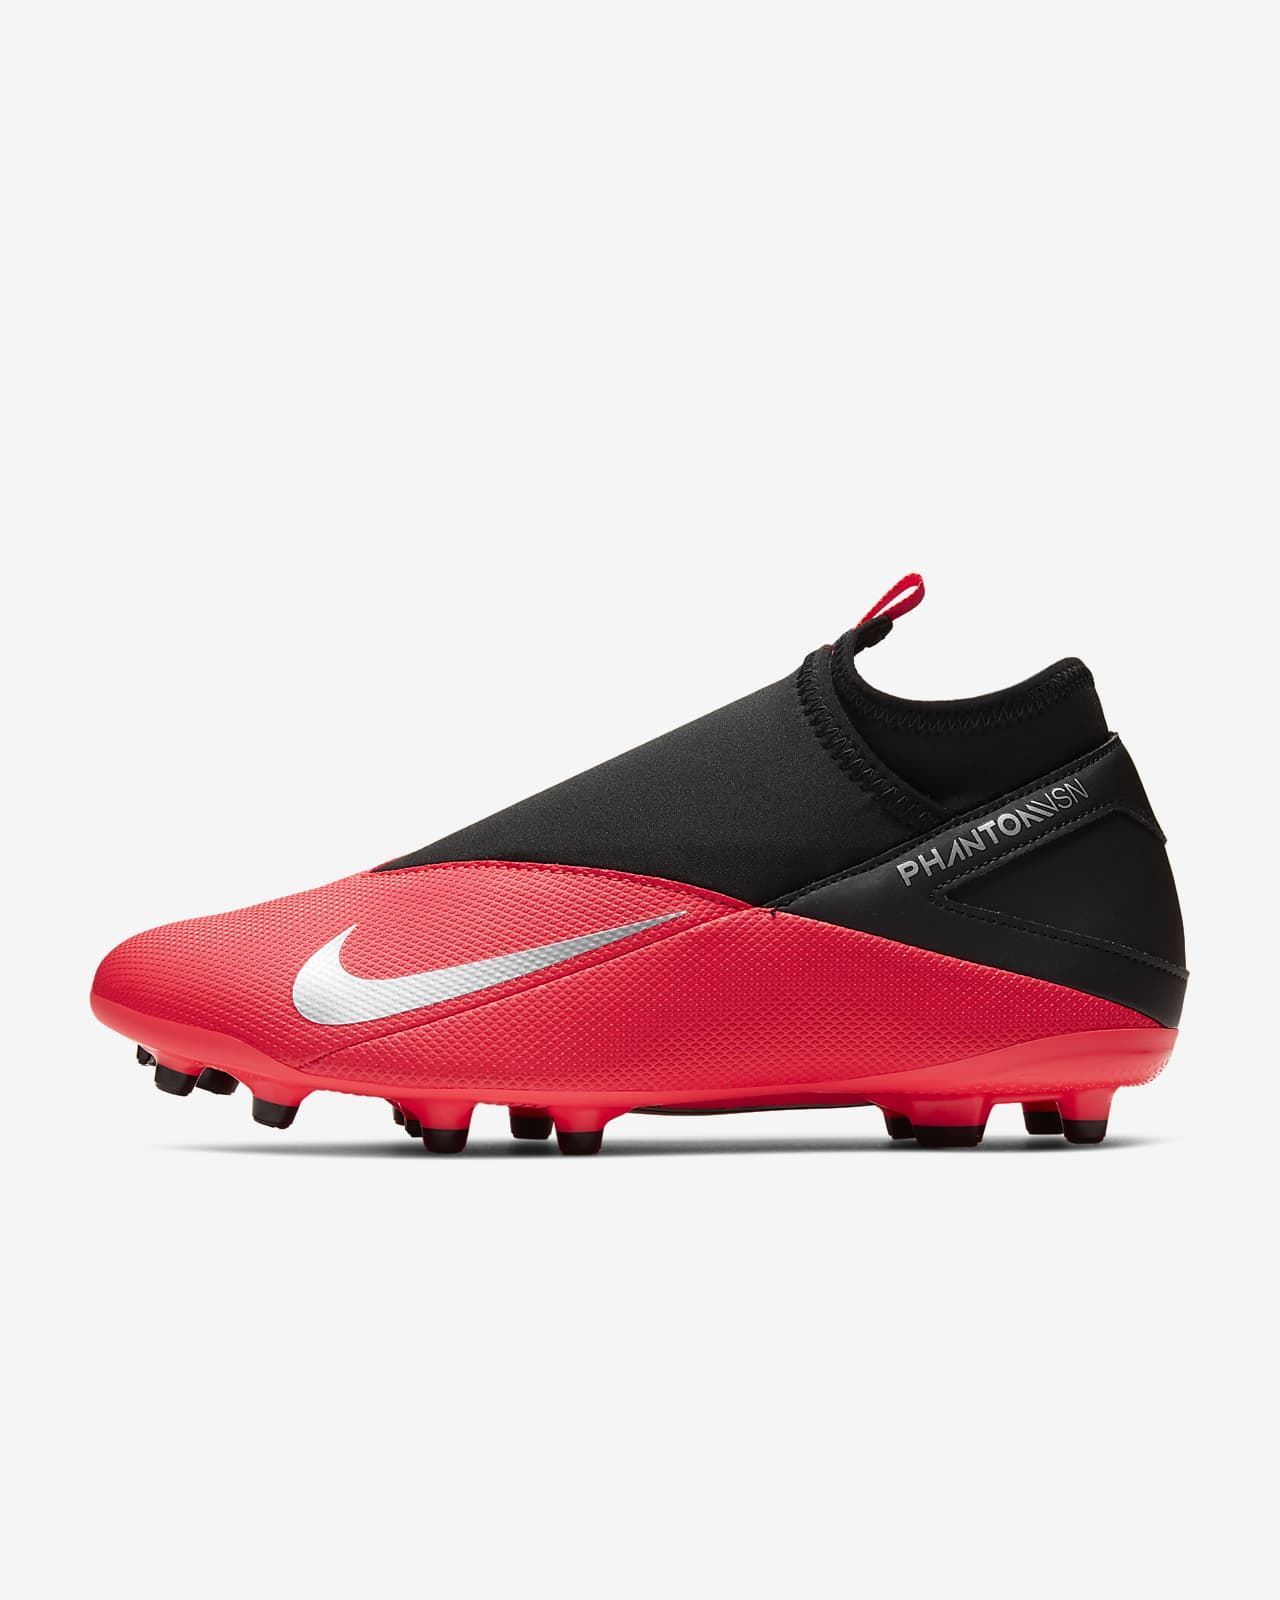 Cesta Personal Disfrazado  Nike Phantom Vision 2 Club Dynamic Fit MG Multi-Ground Football Boot. Nike  IN